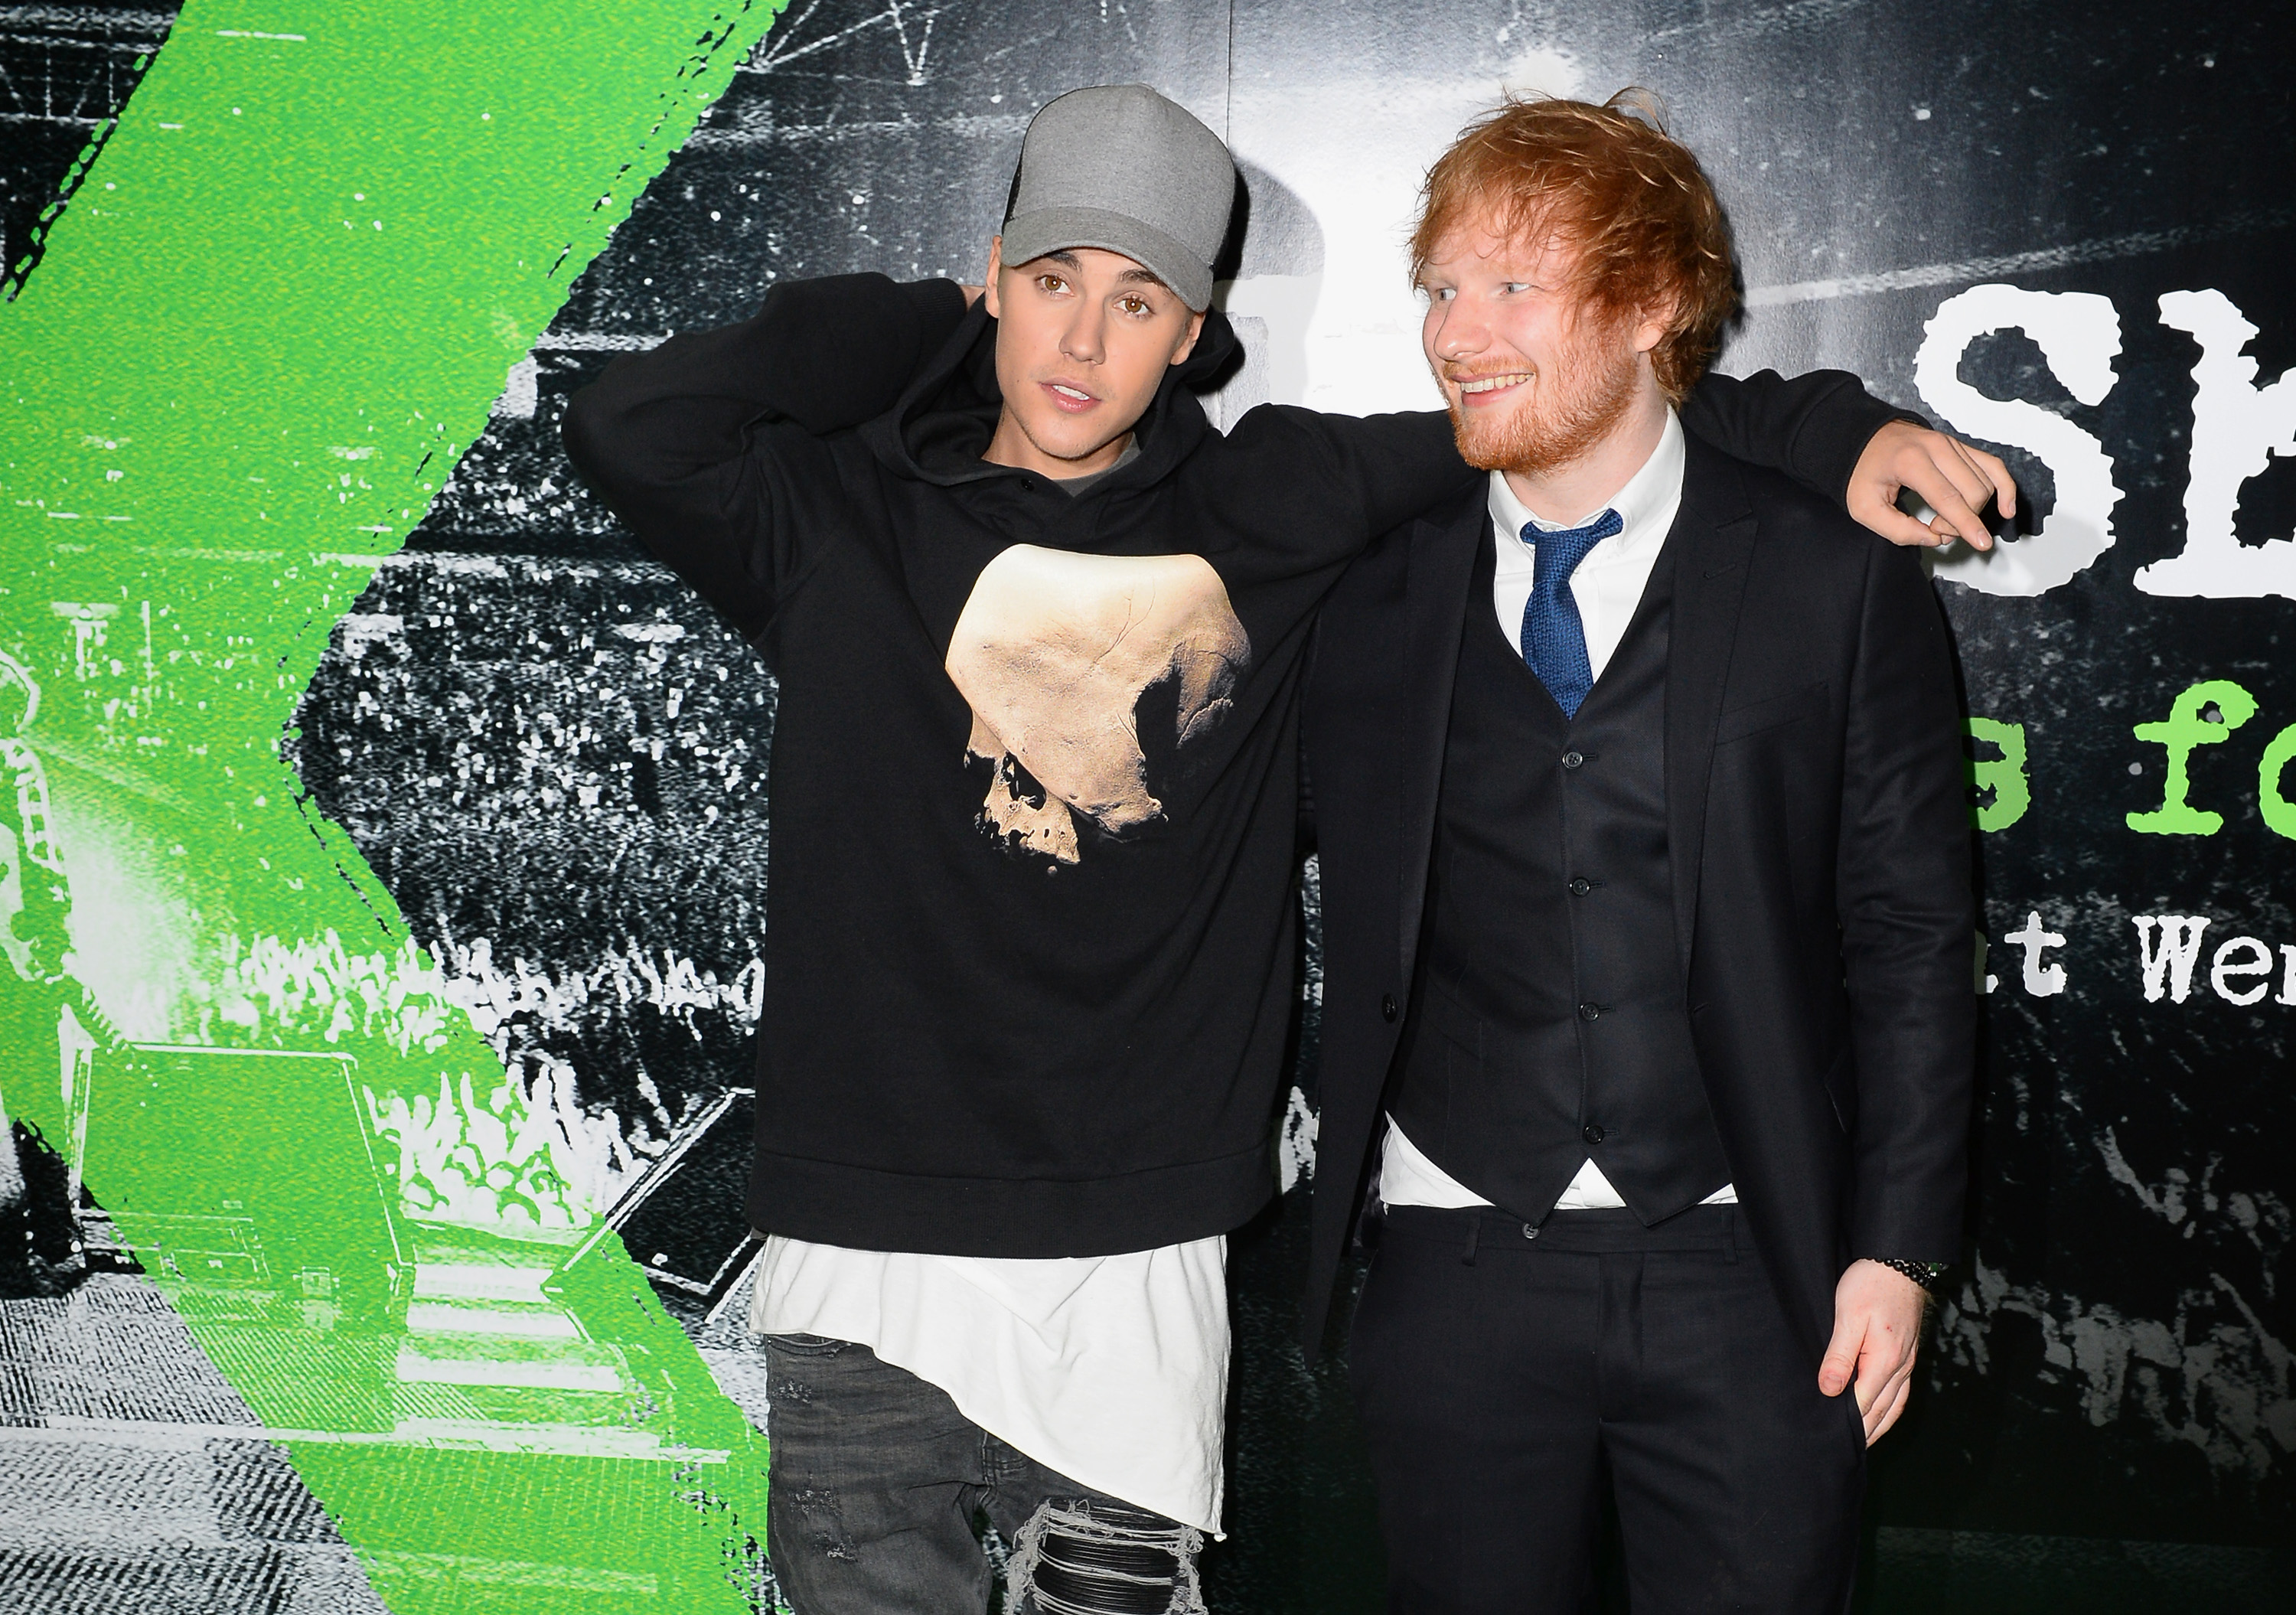 Ed Sheeran Once Hit Justin Bieber In The Face With A Golf Club